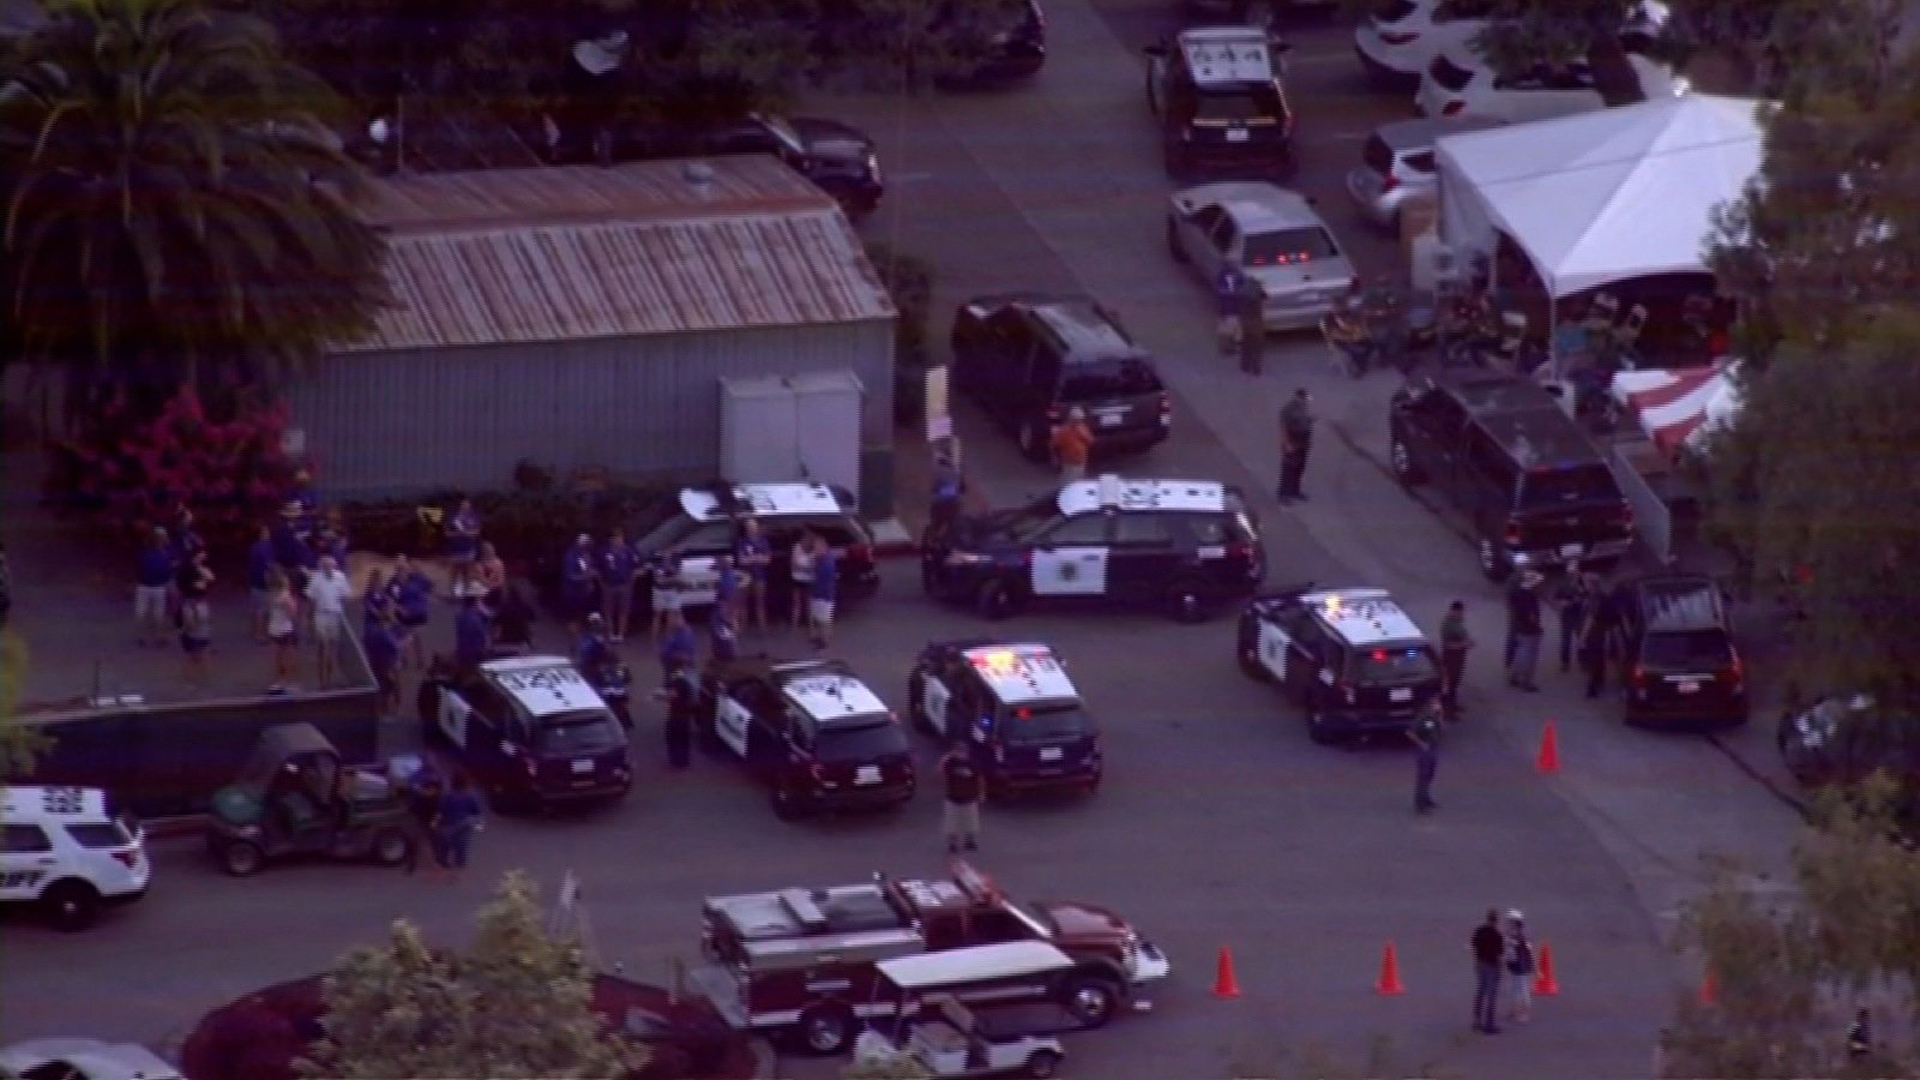 Gilroy police responded to a mass shooting at the Garlic Festival on July 28, 2019. (Credit: KPIX)